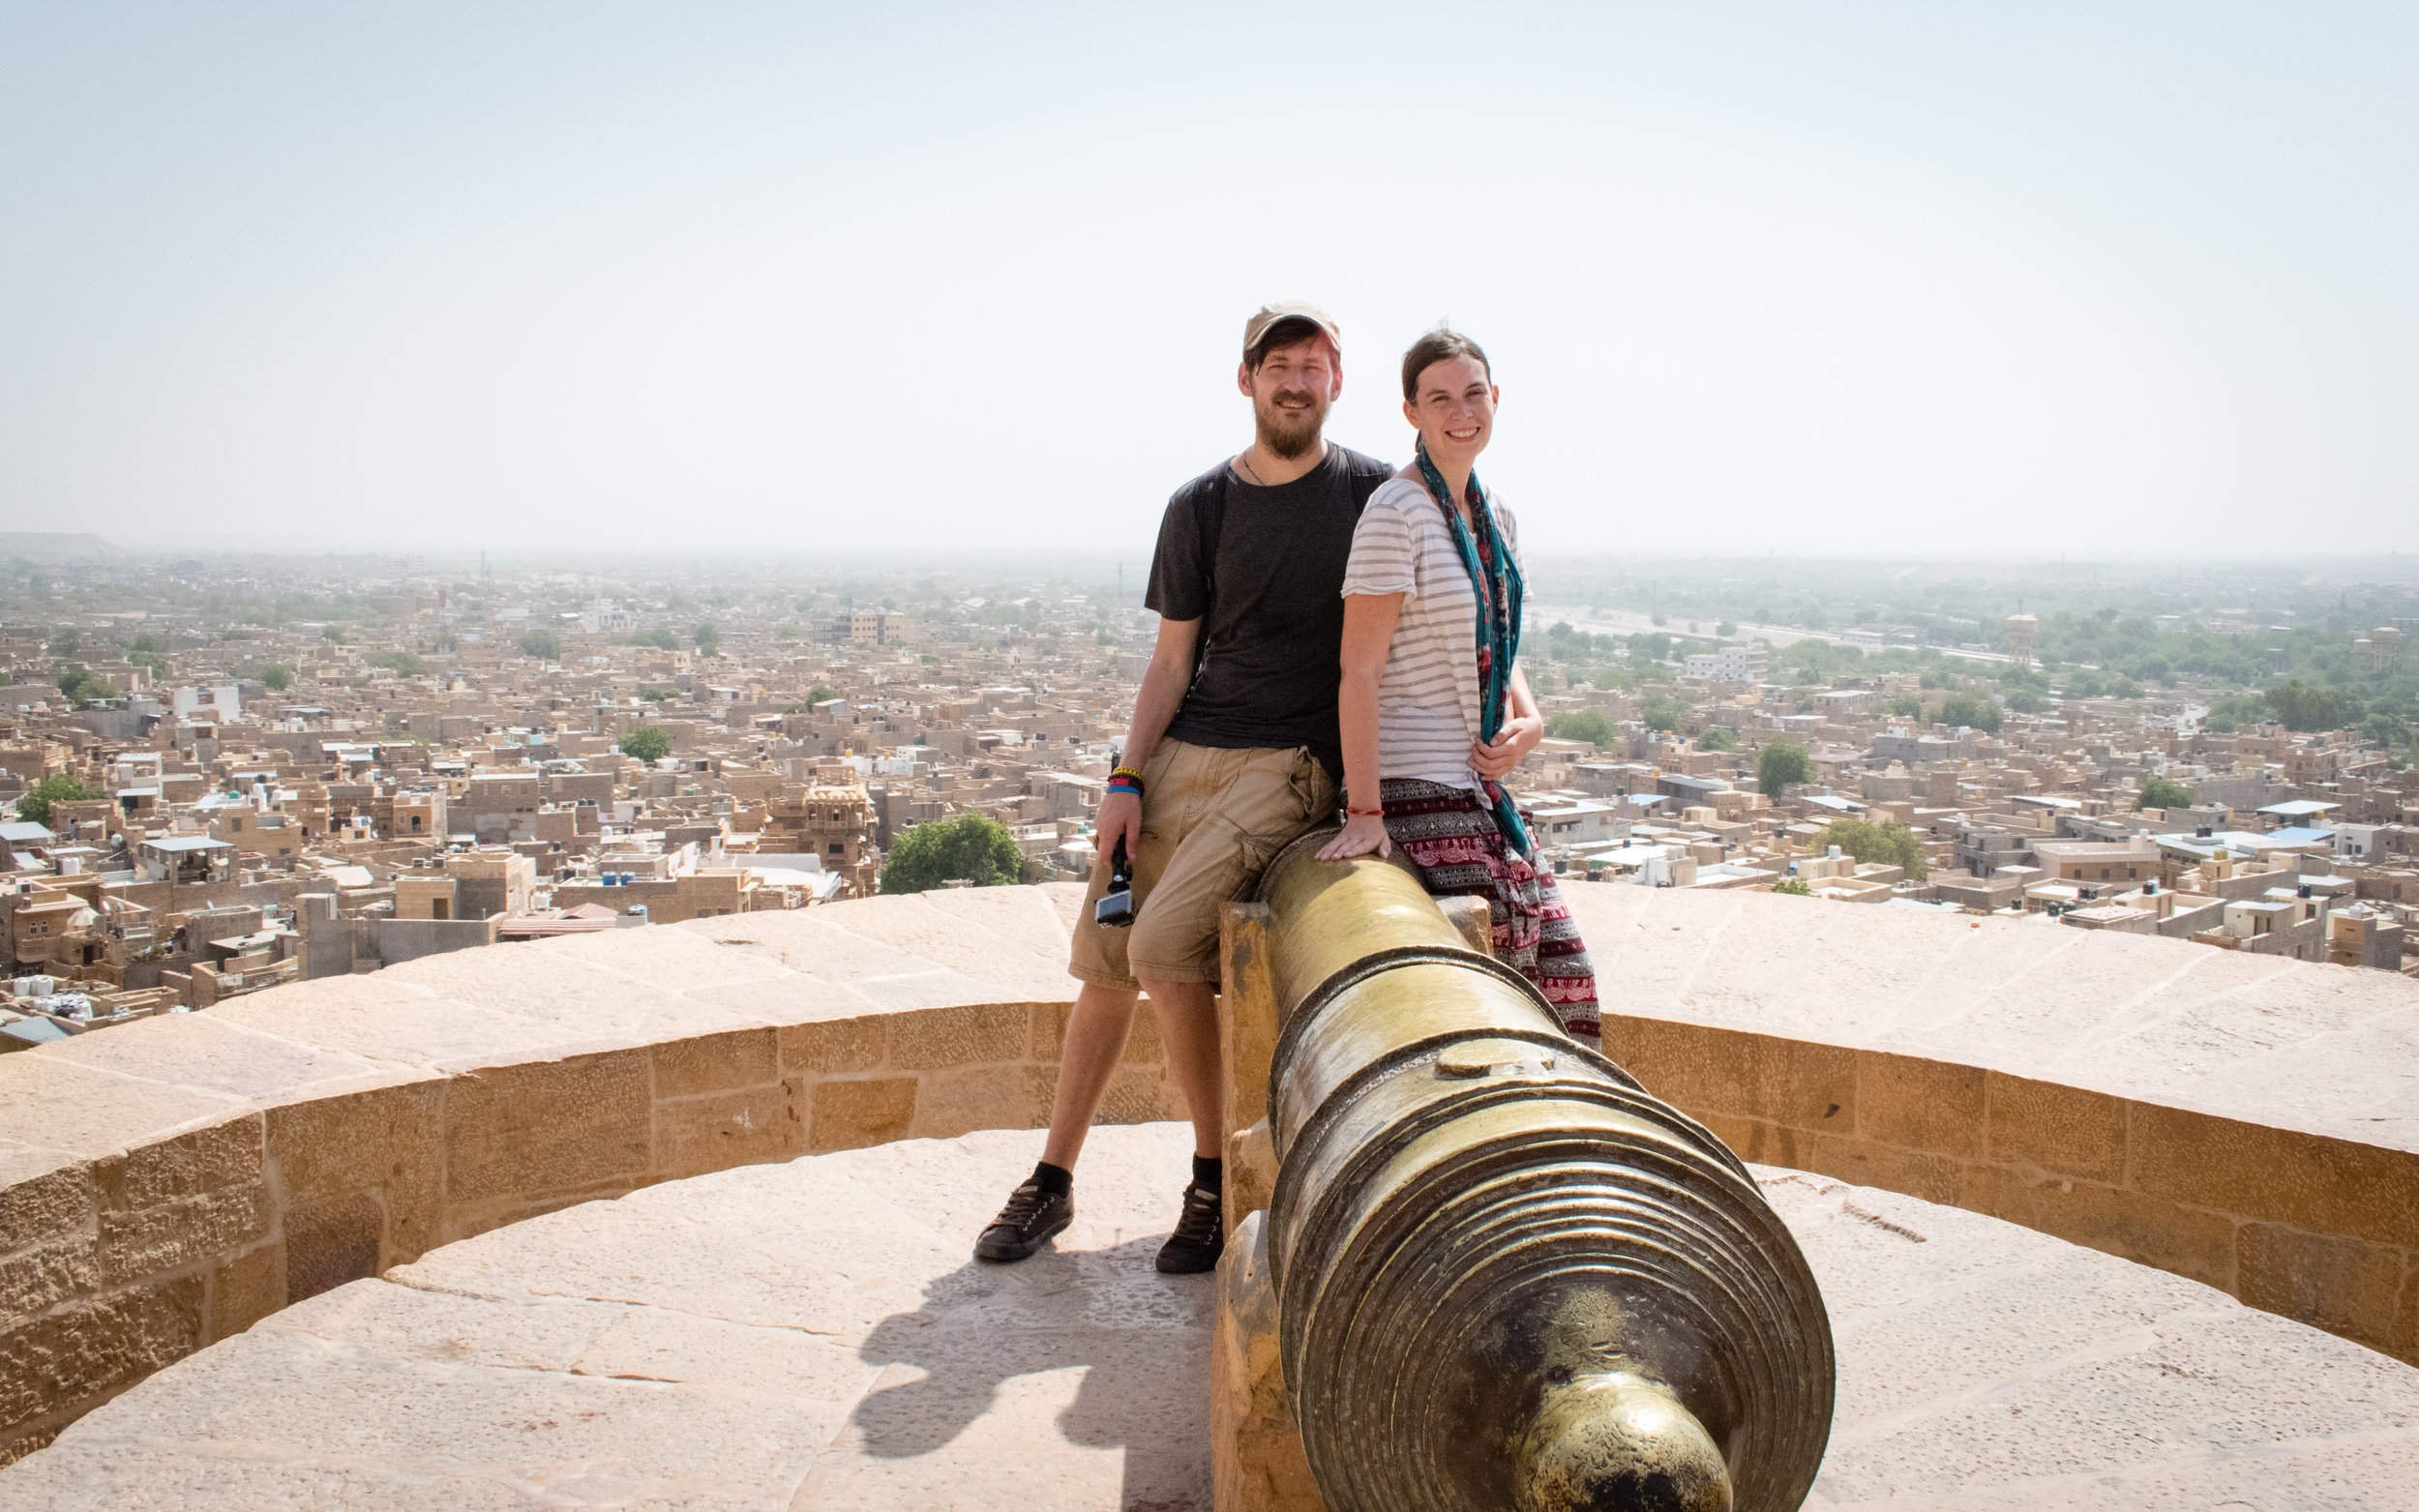 Us In Jaisalmer In India